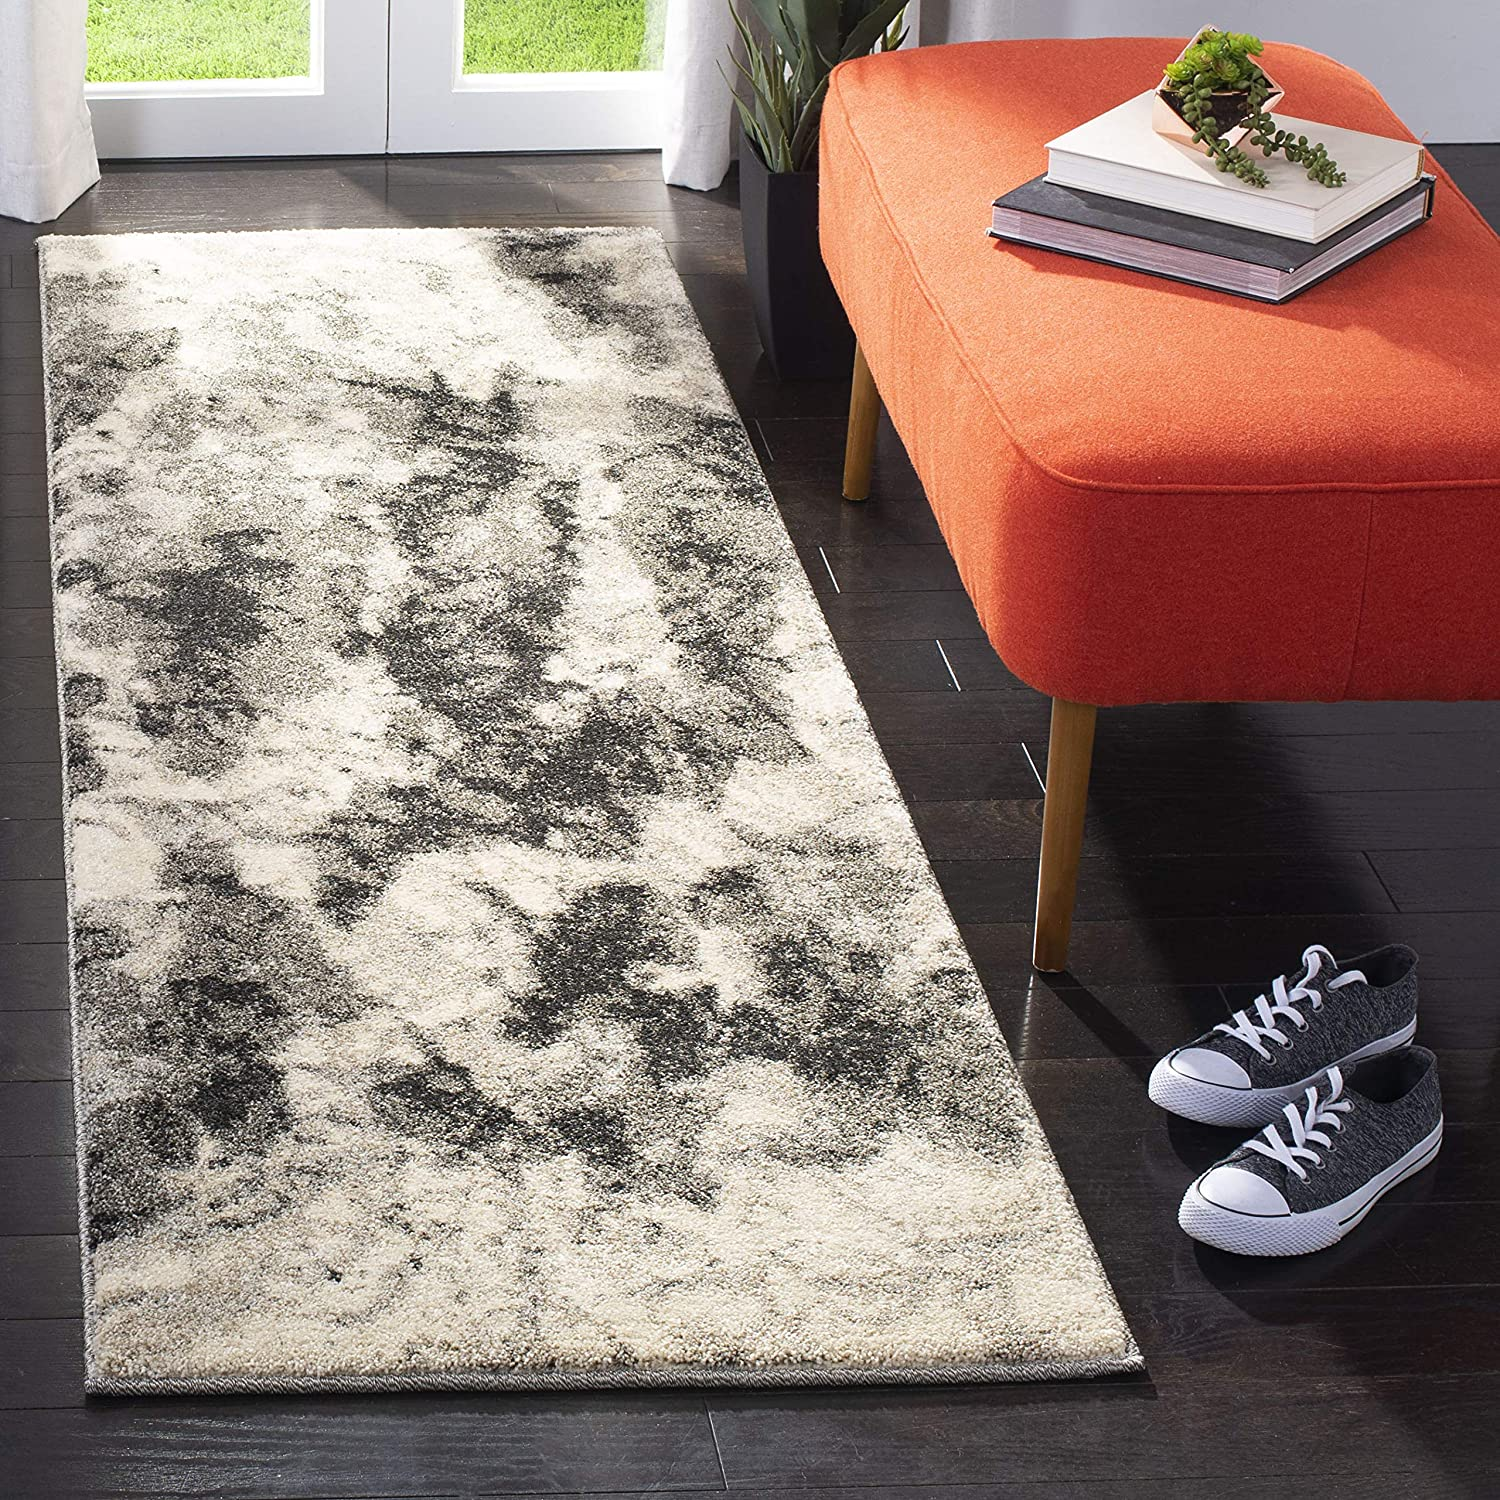 Safavieh Retro Collection Large discharge sale RET2141 Modern Non-Shedding depot Abstract S